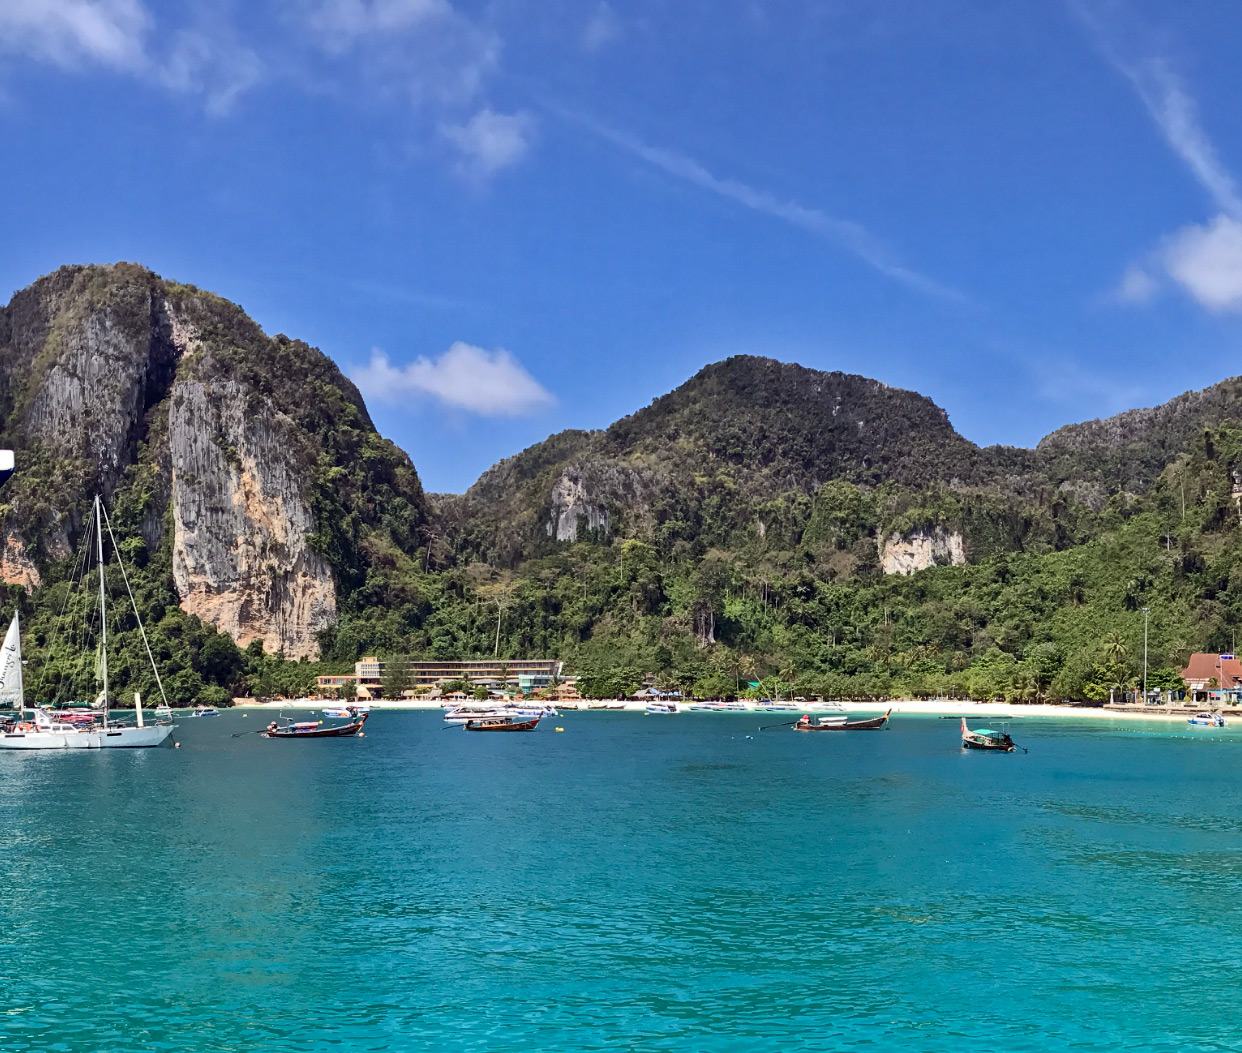 gustav ebba interns krabi kon tiki phi phi islands